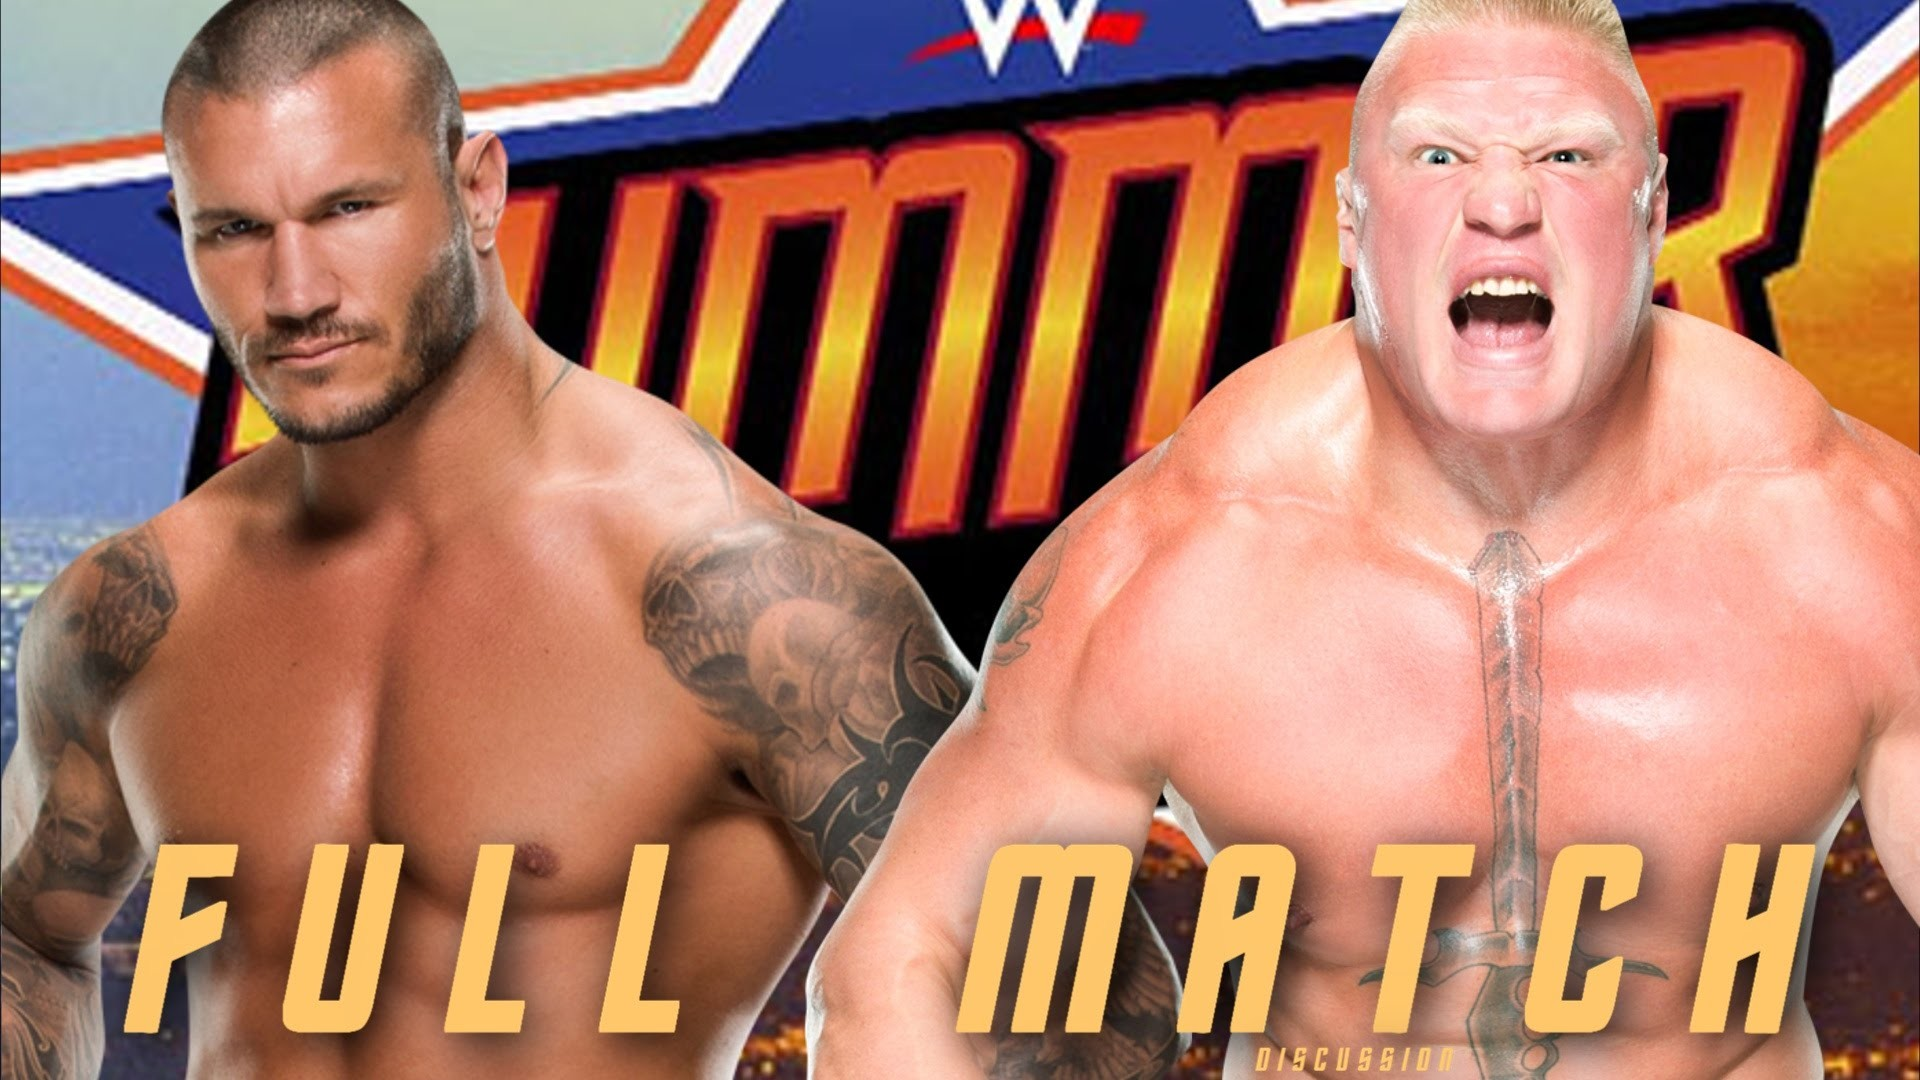 1920x1080 WWE Summerslam 2016: Brock Lesnar vs. Randy Orton Full Match Highlights